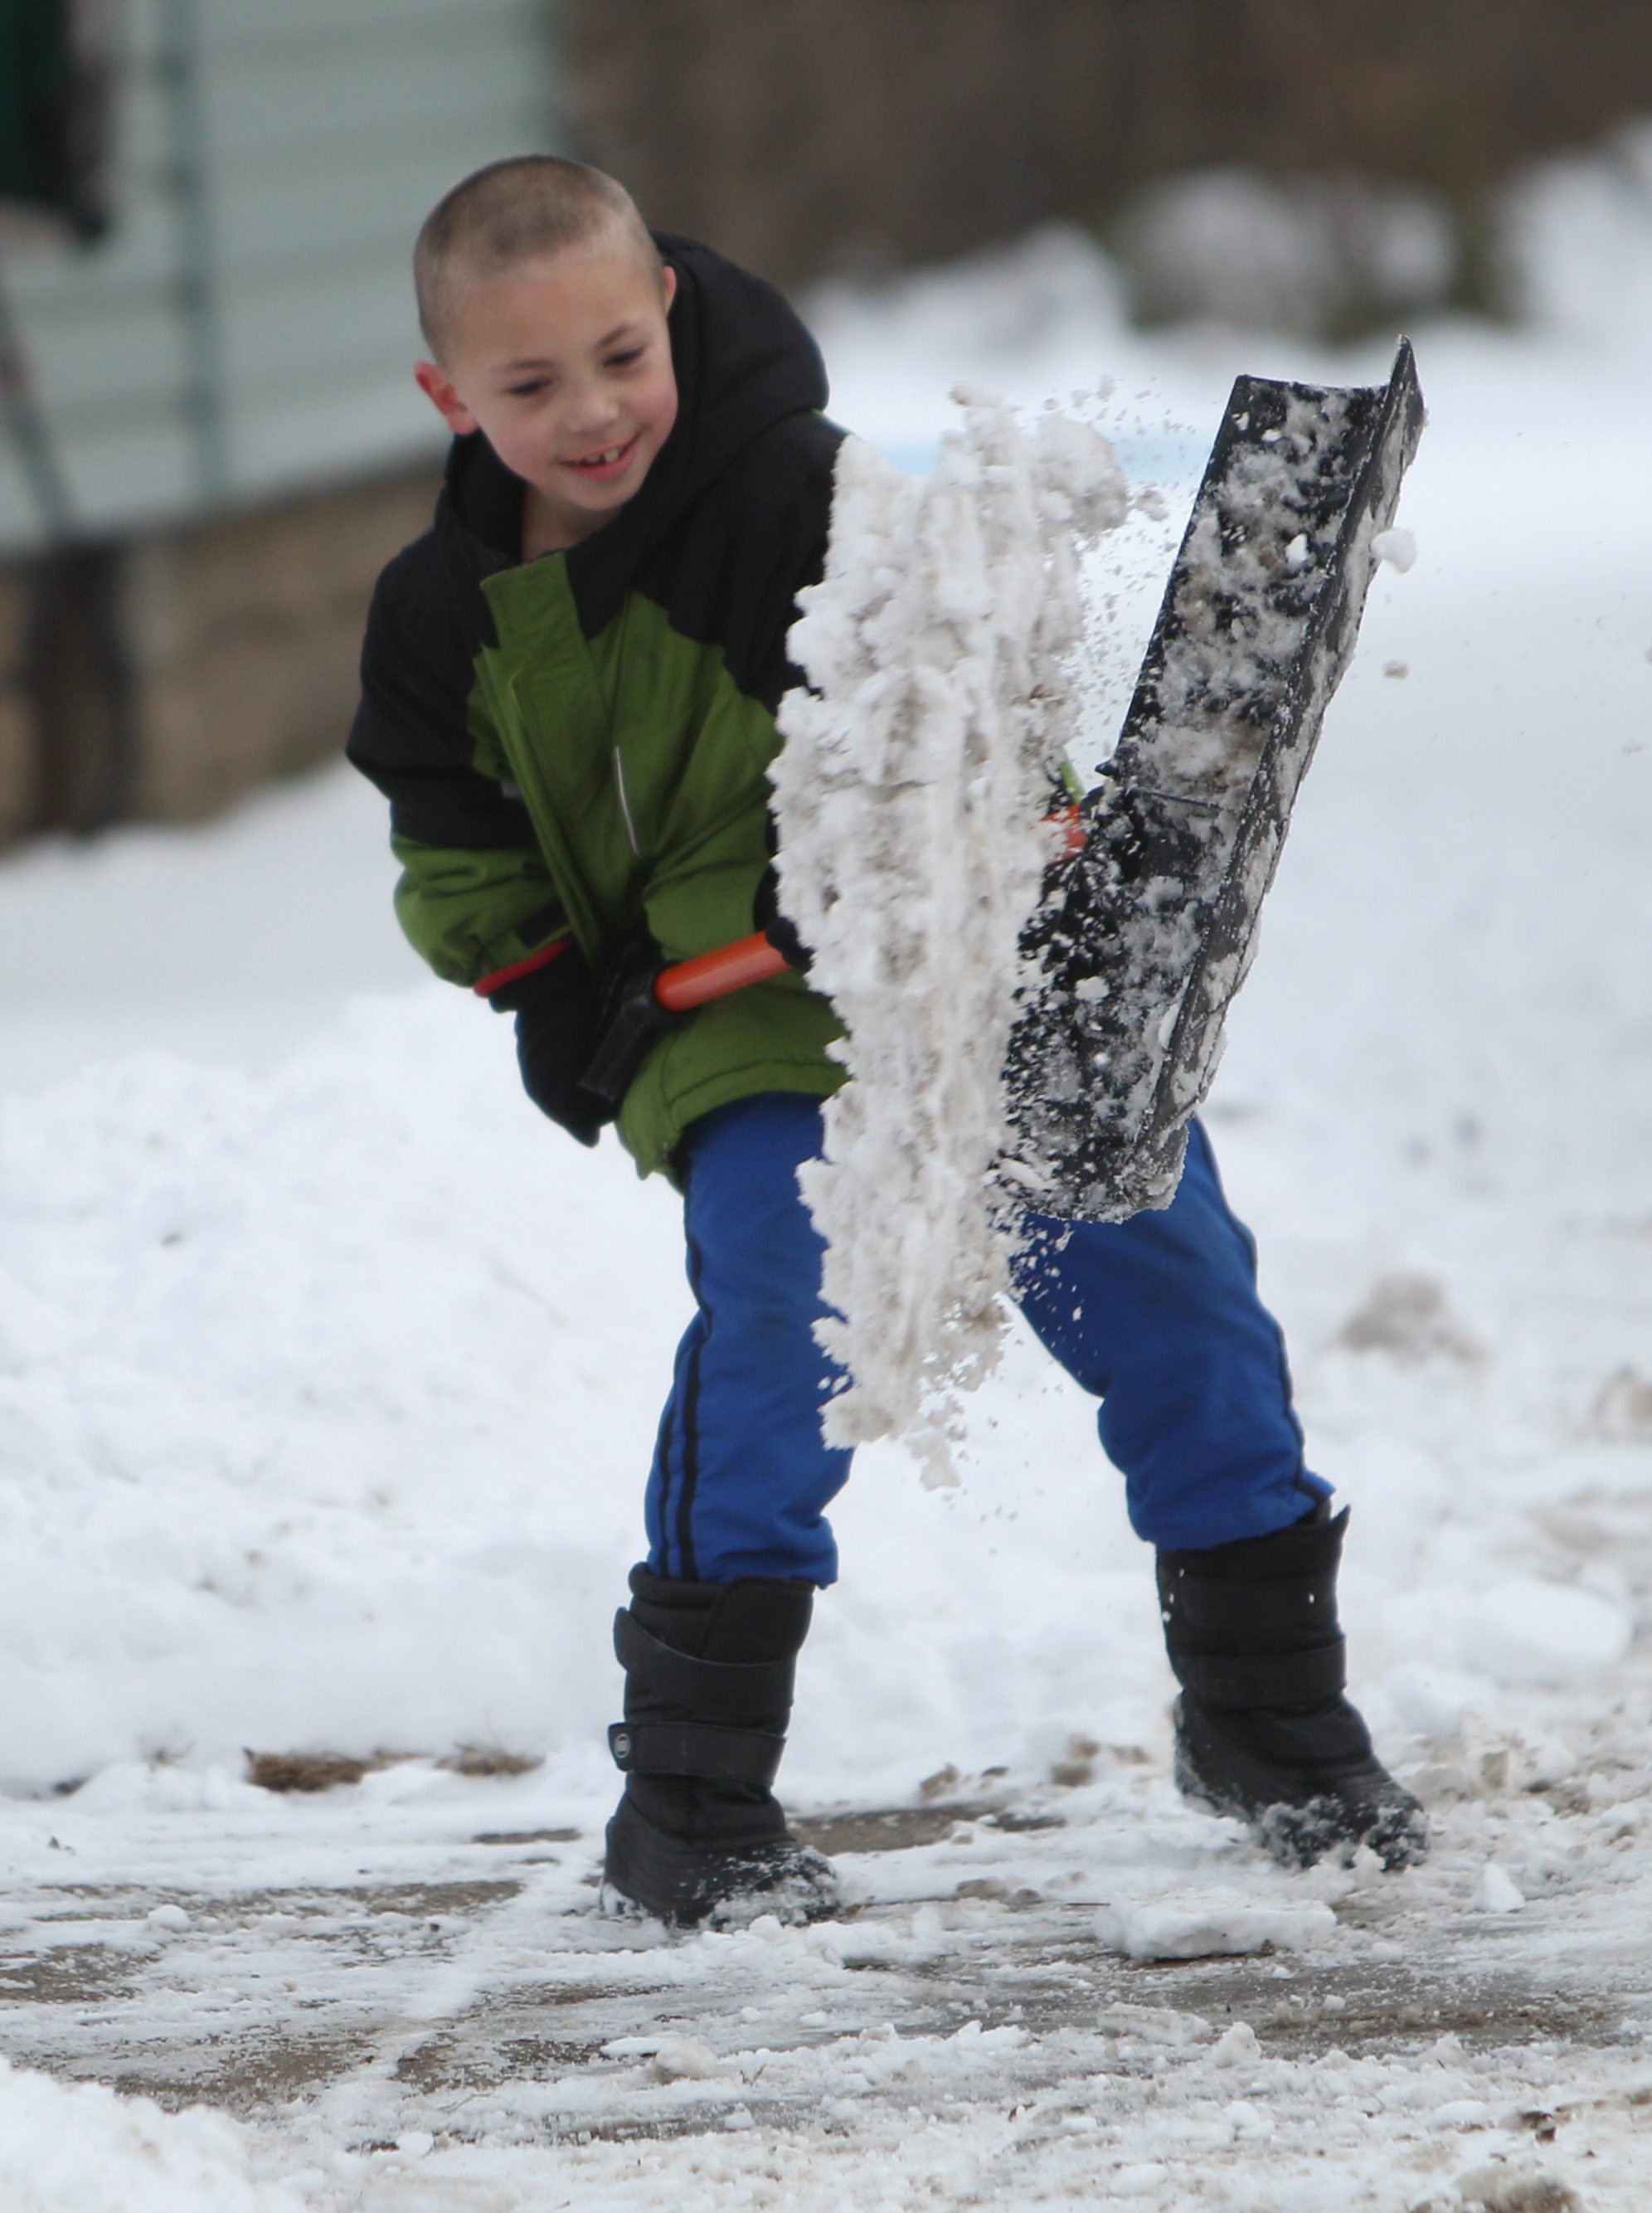 Jacob Hannahalon, 7, of Wheatfield Street in North Tonawanda, works hard at removing the packed snow from his driveway Saturday. He's likely to get more practice in the near future.